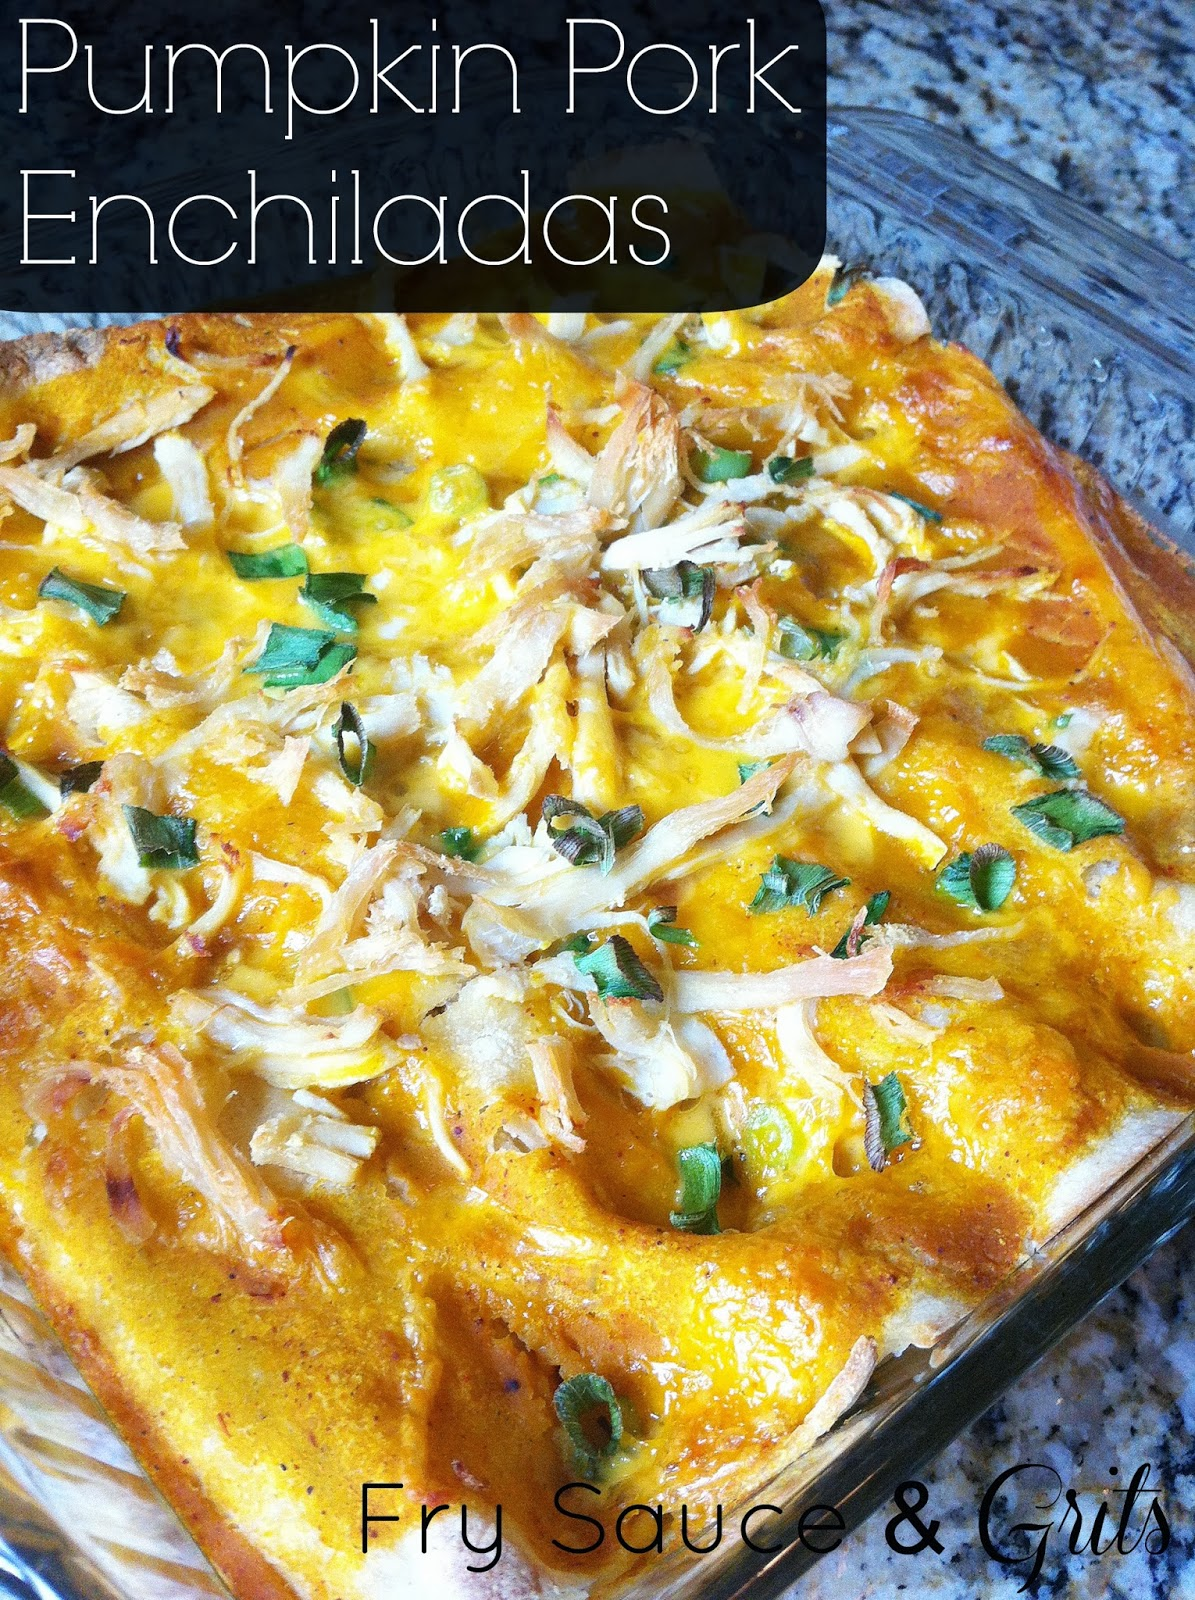 Pumpkin Pork Enchiladas from FrySauceandGrits.com